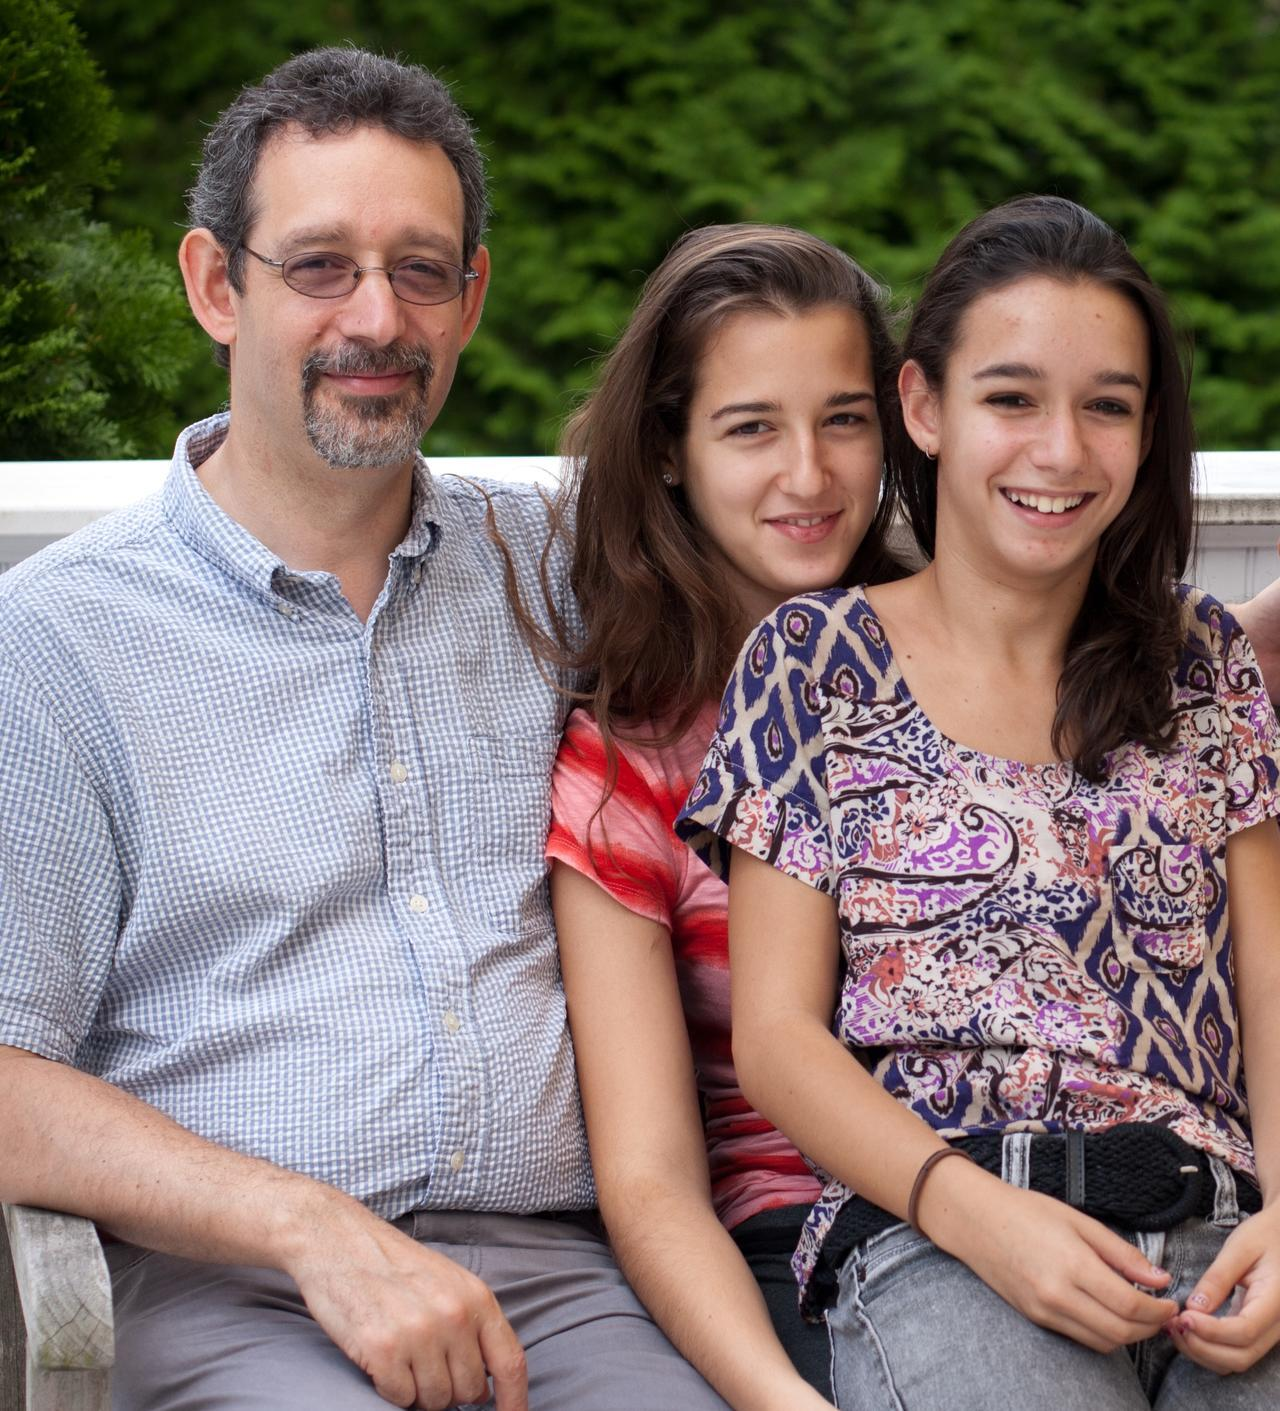 richard_dale_and_daughters.jpg